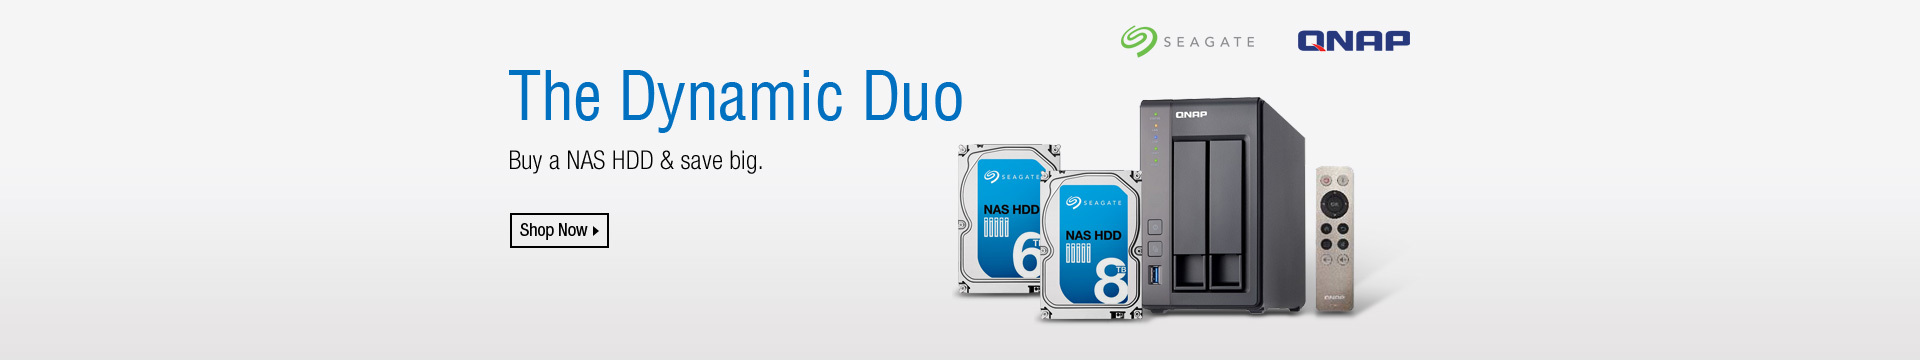 The Dynamic Duo. NAS + HDD Combos